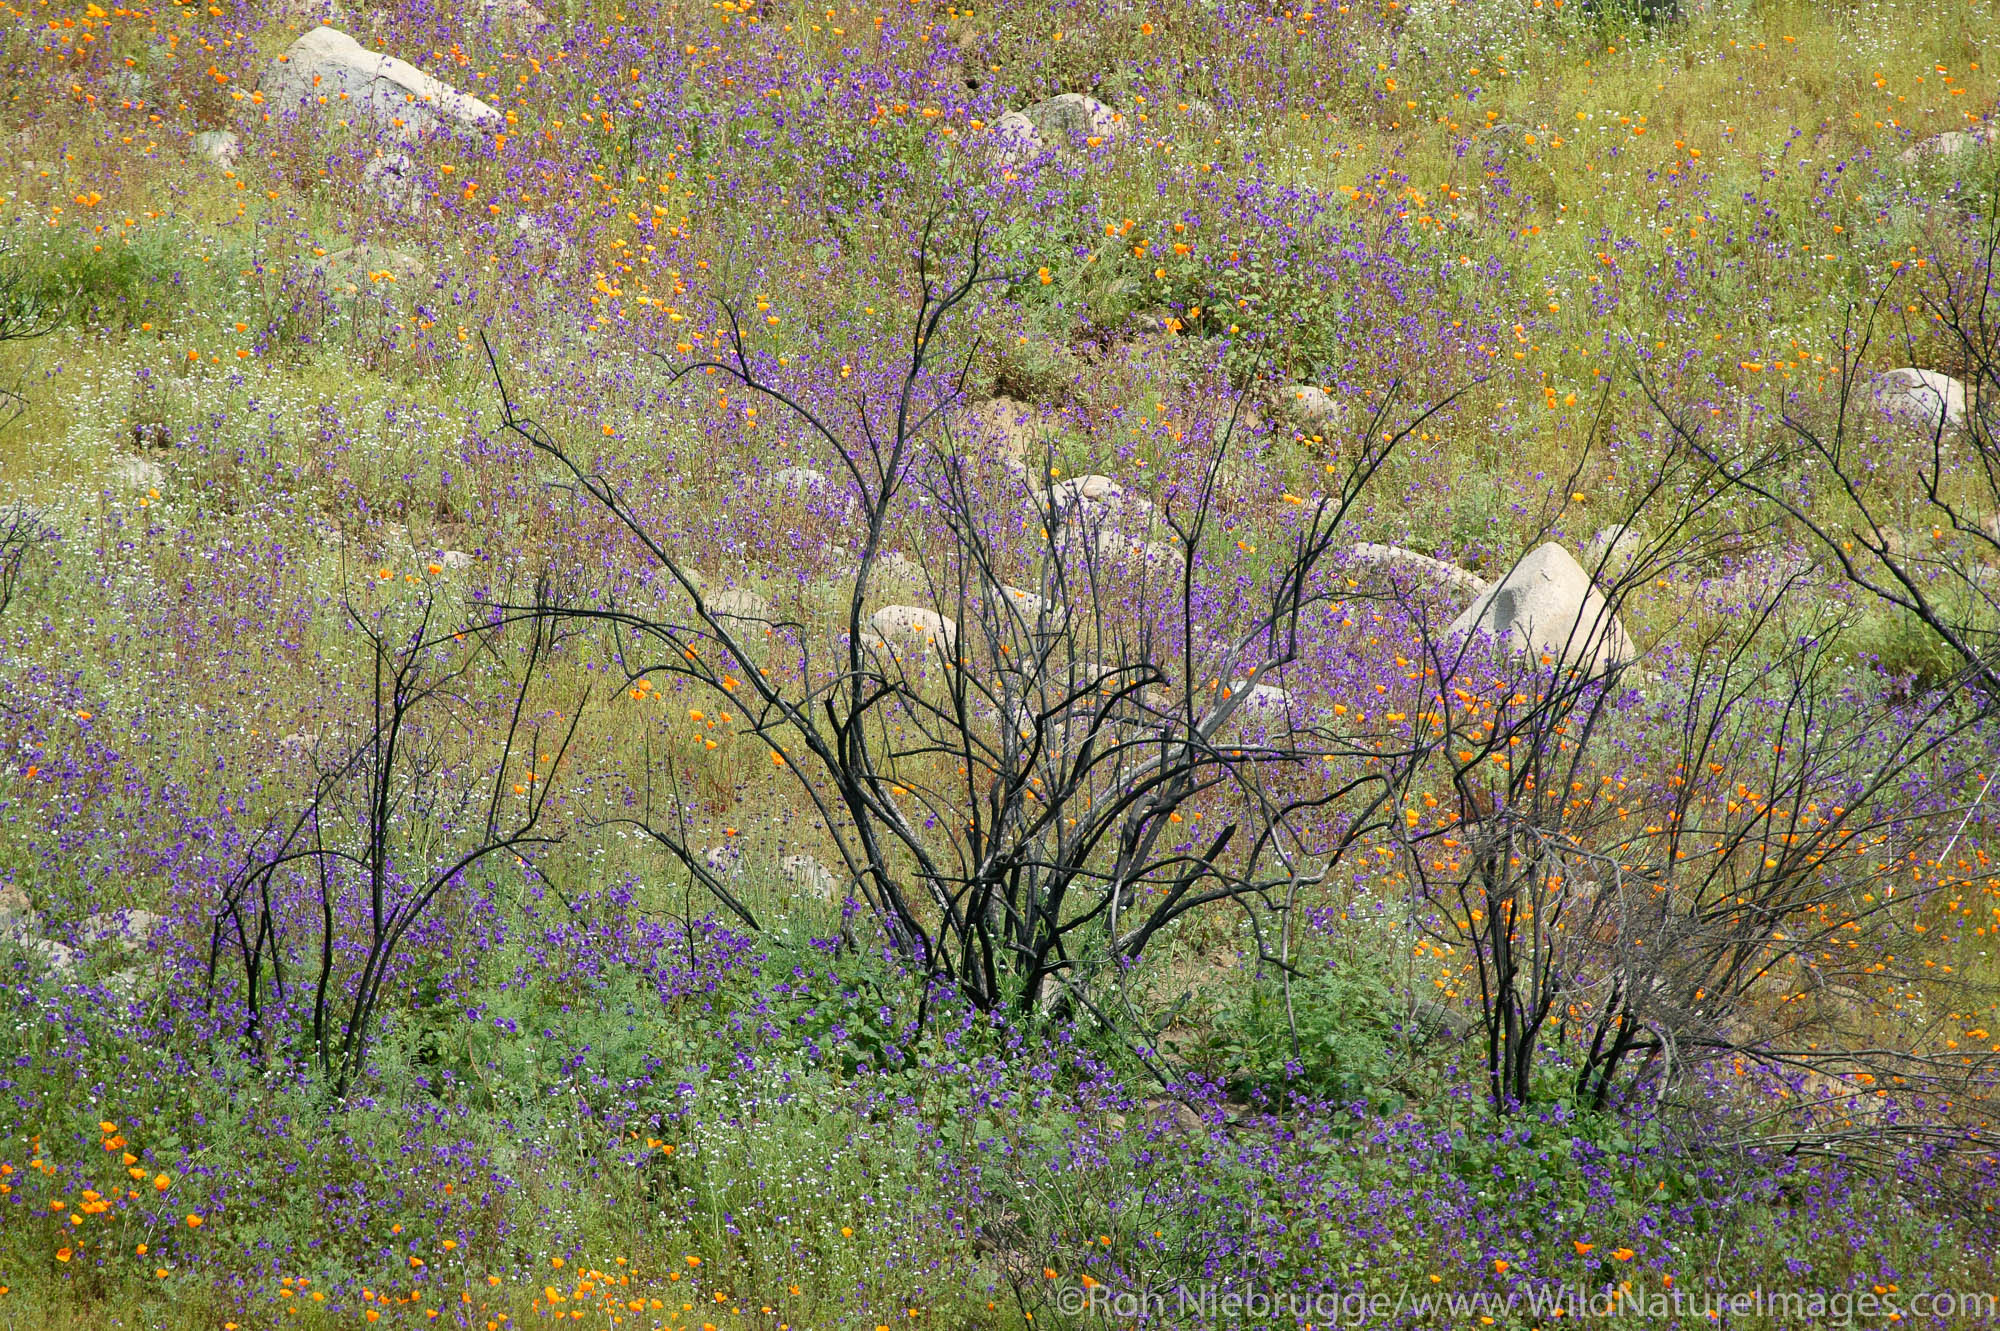 Burnt branches and spring wildflowers near Lake Elsinore, California.